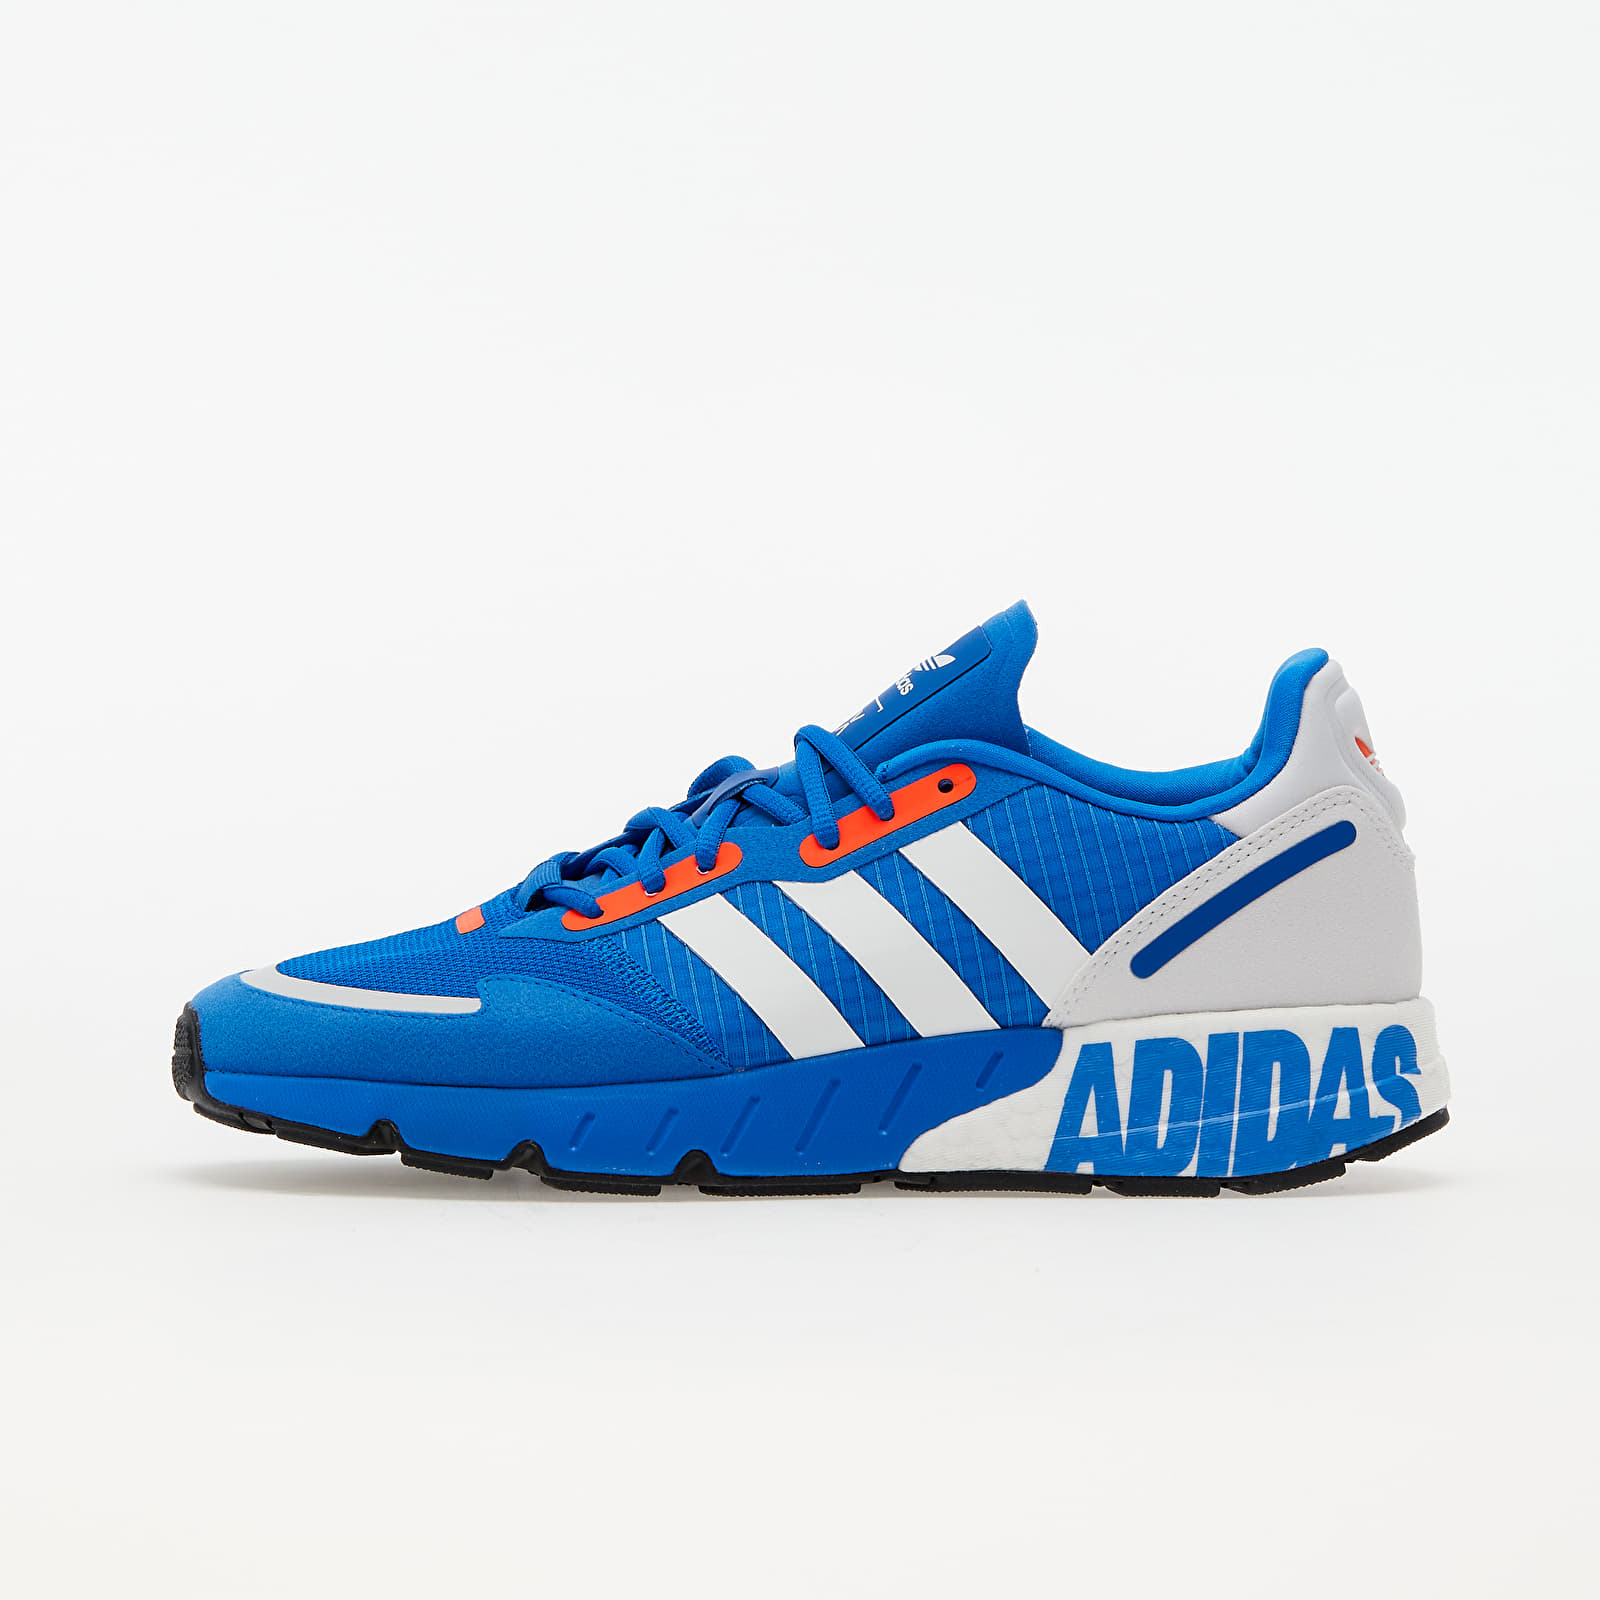 adidas ZX 1K Boost Glow Blue/ Ftw White/ Solar Red H68720